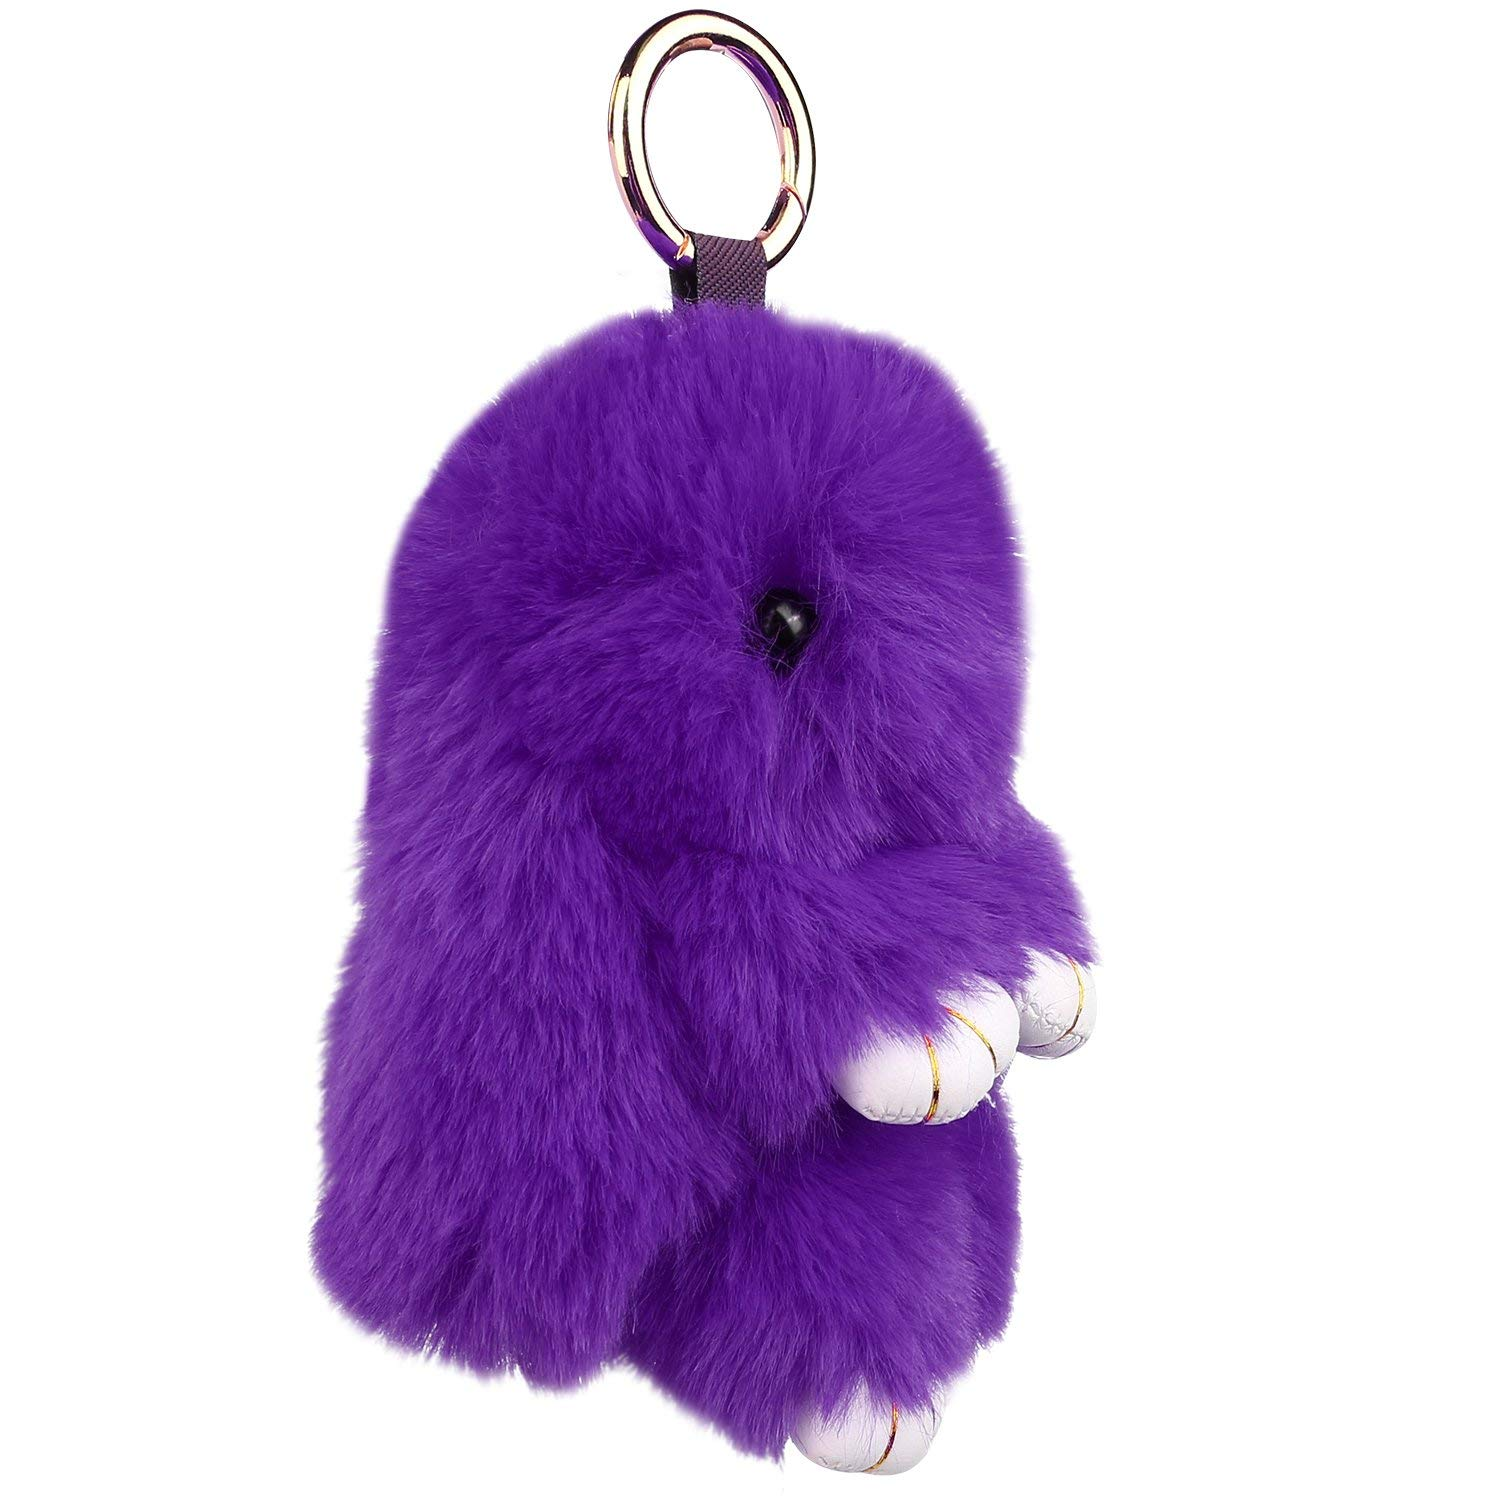 b0cfbcc364 ... Auranso Bunny Keychain Plush Rabbit Faux Fur Keyring Bag Fluffy Pompom Charms  Pendant Decoration best value ...